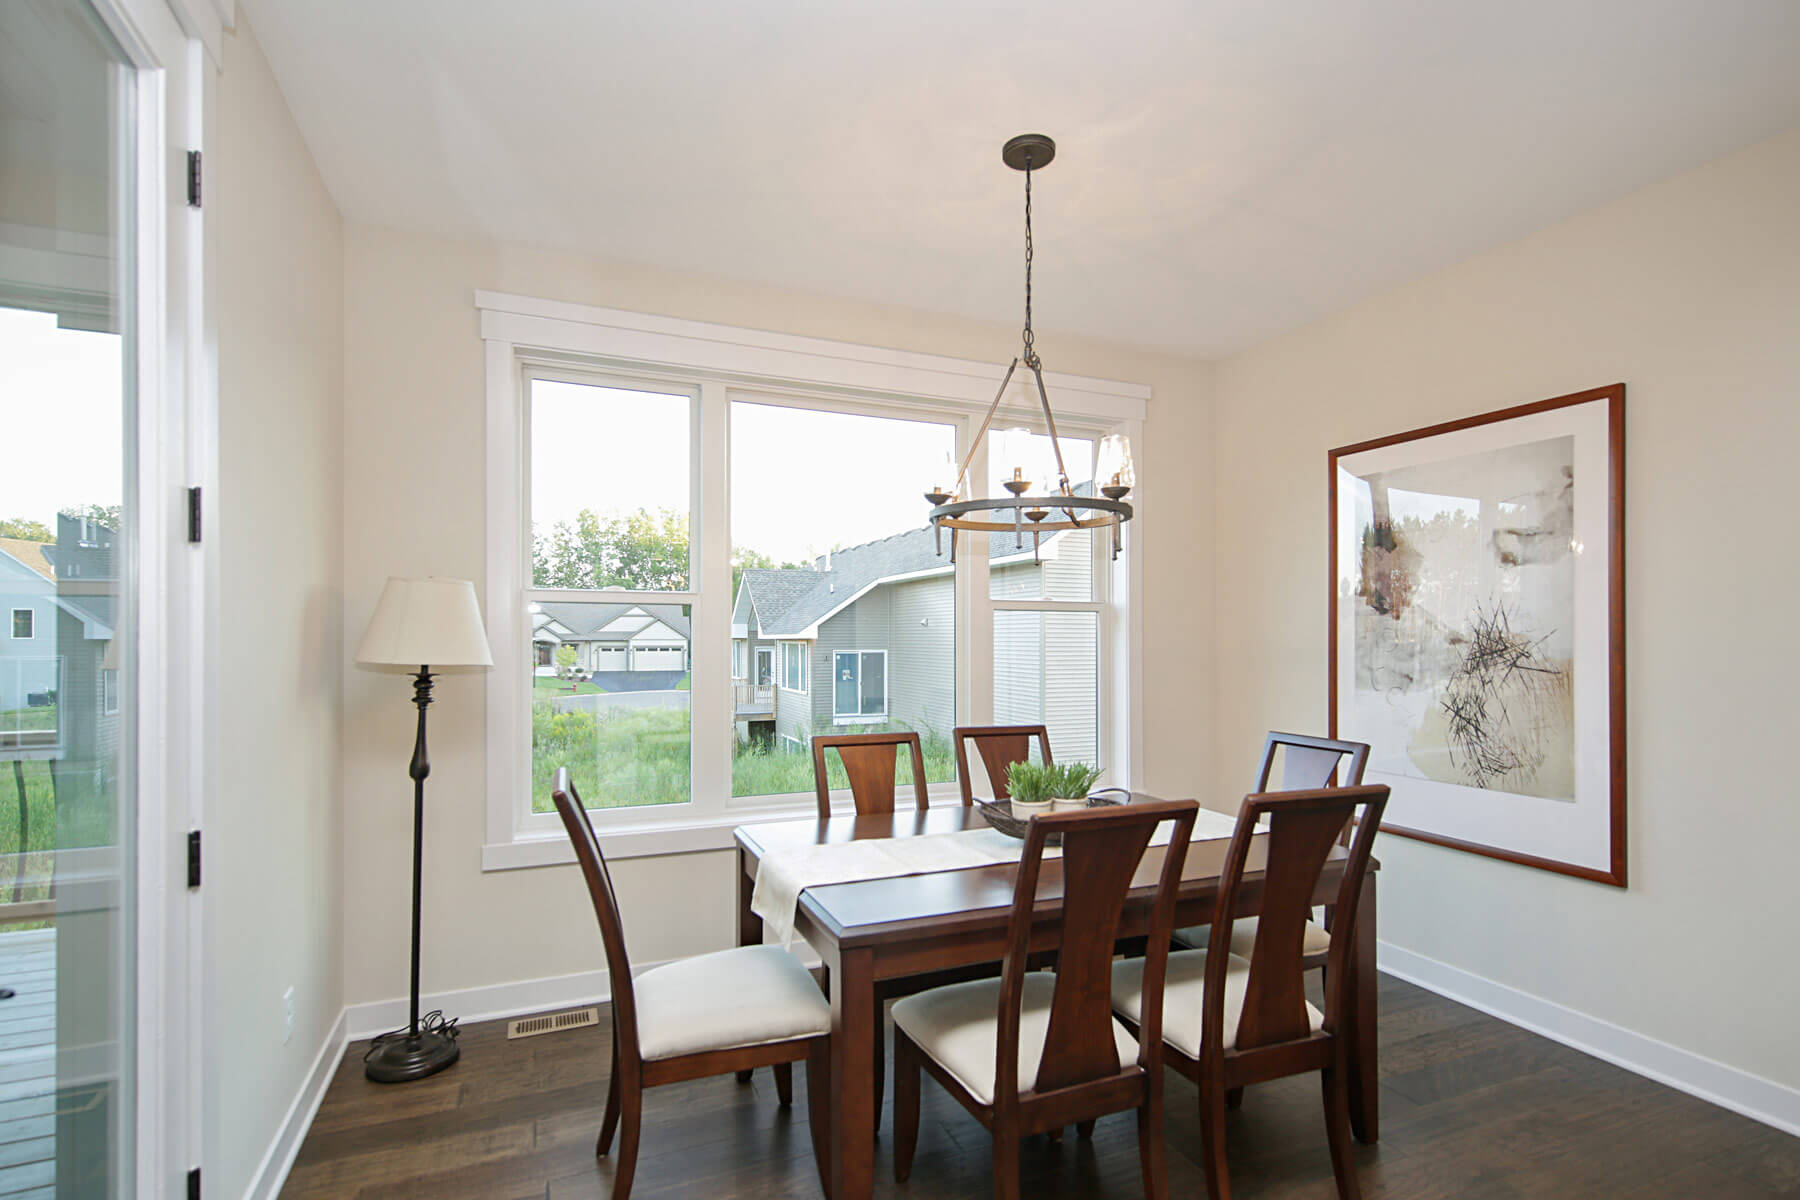 Twin Cities New Construction Monterey Court Home Stillwater Minnesota dining room area built by Red Pine Builders